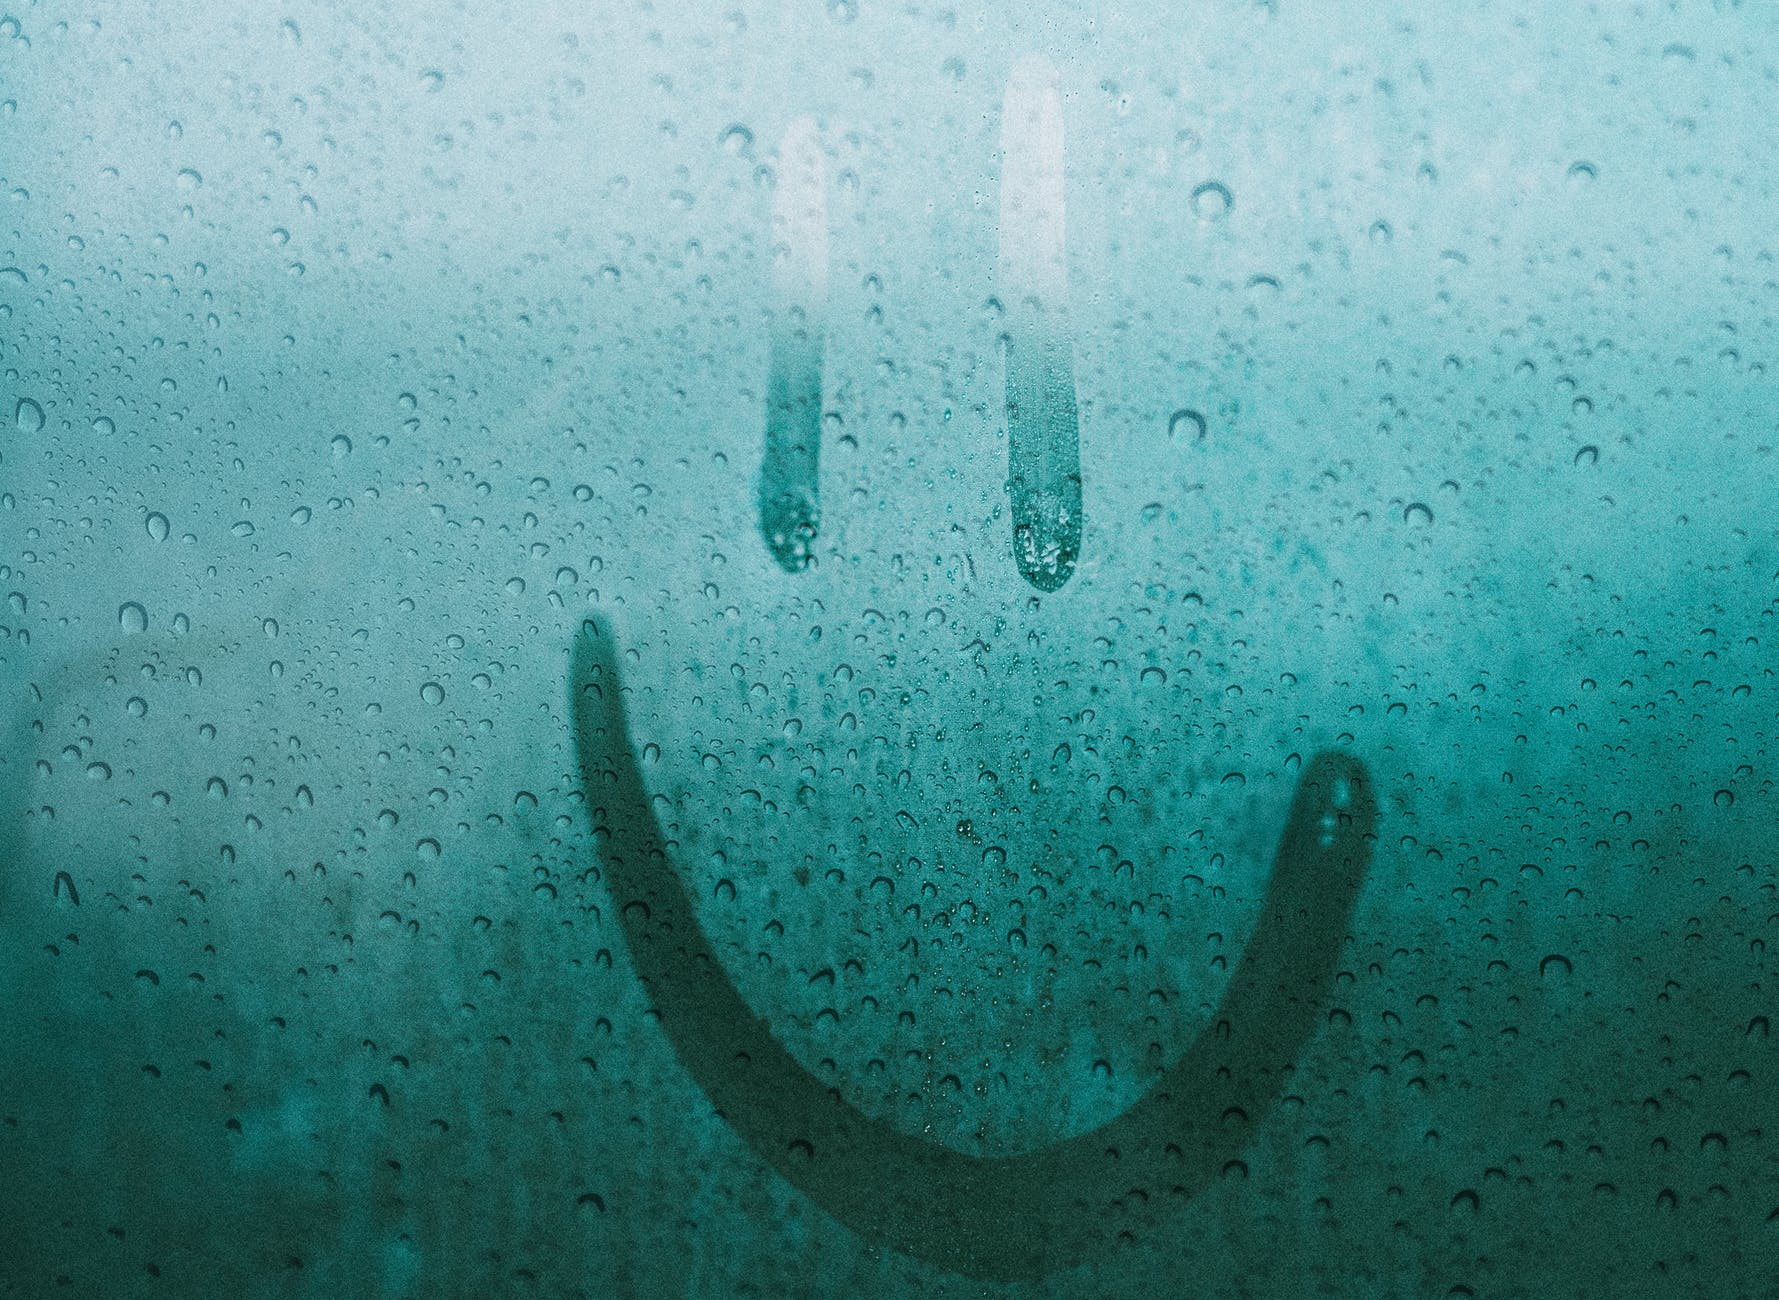 smile drawn with finger in condensation